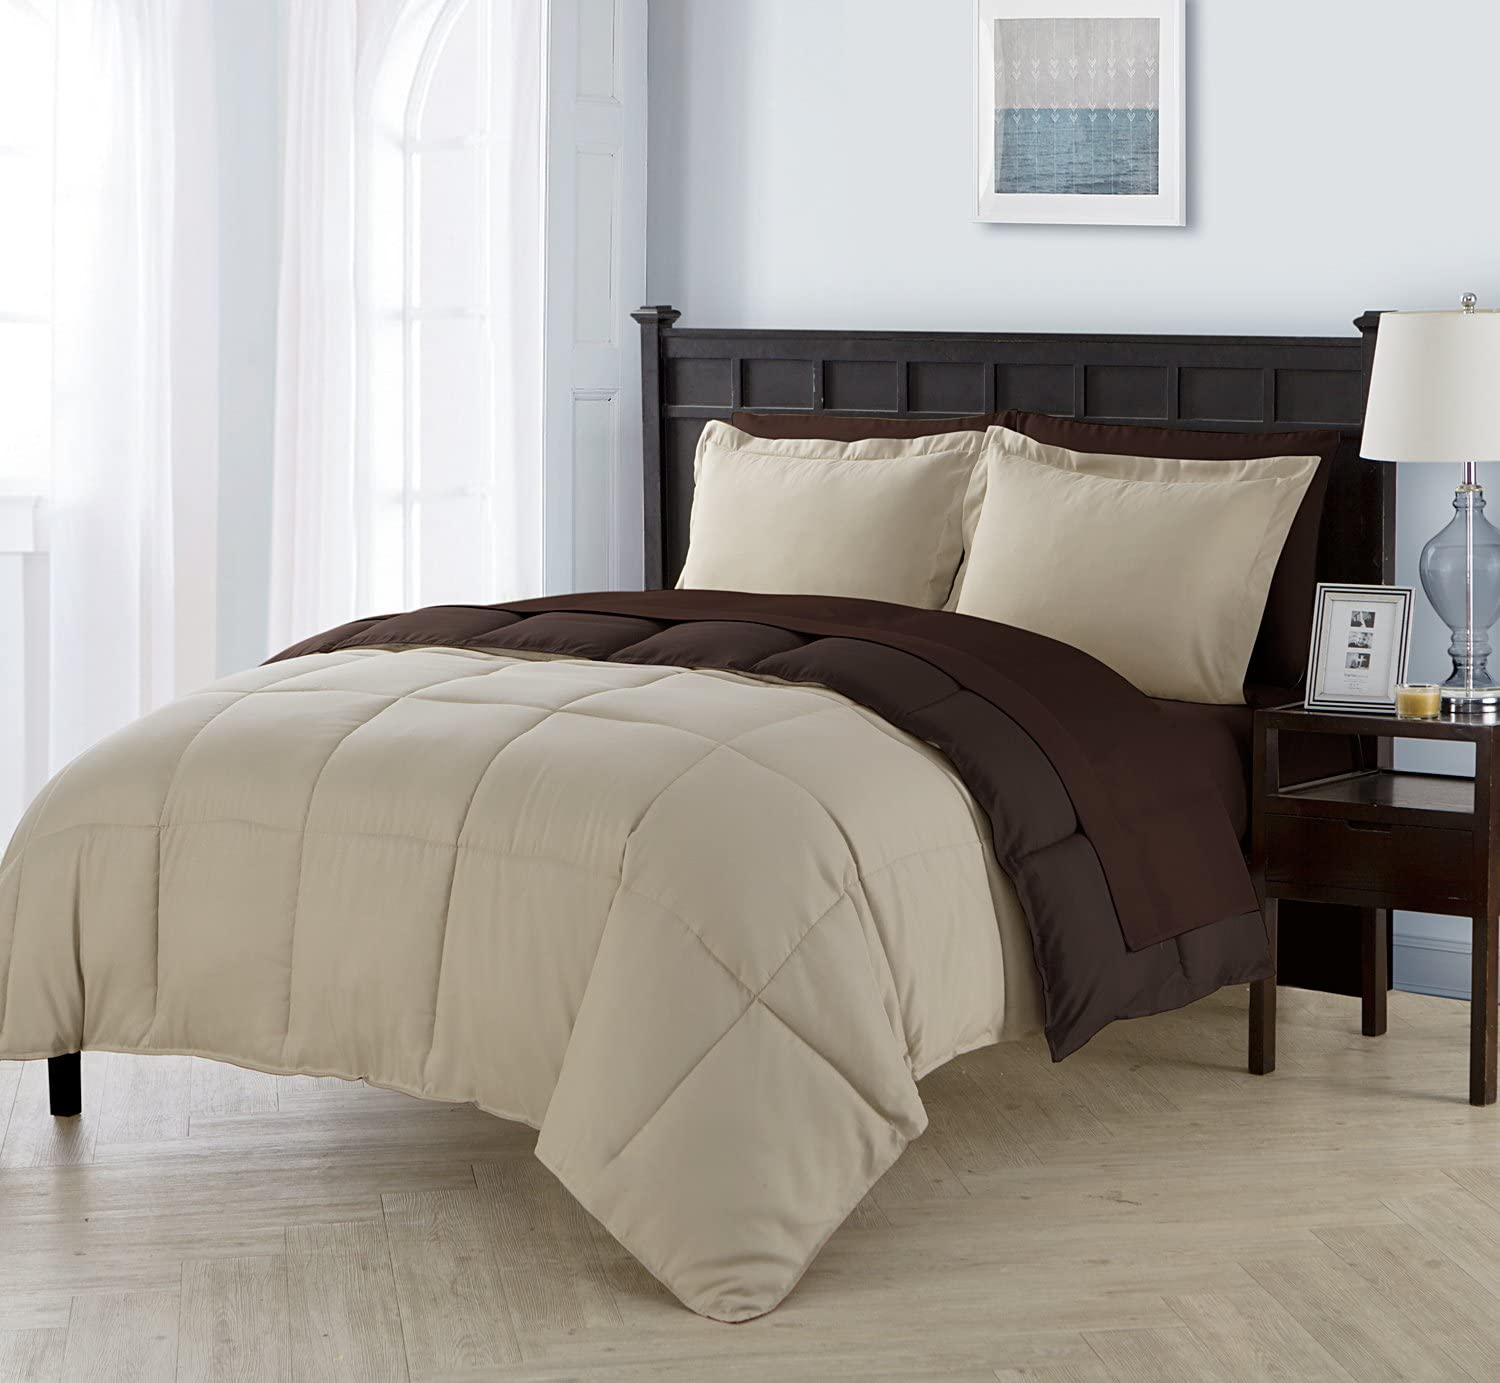 VCNY Home Lincoln Collection Comforter Bedding Import Soft trust Set Cozy